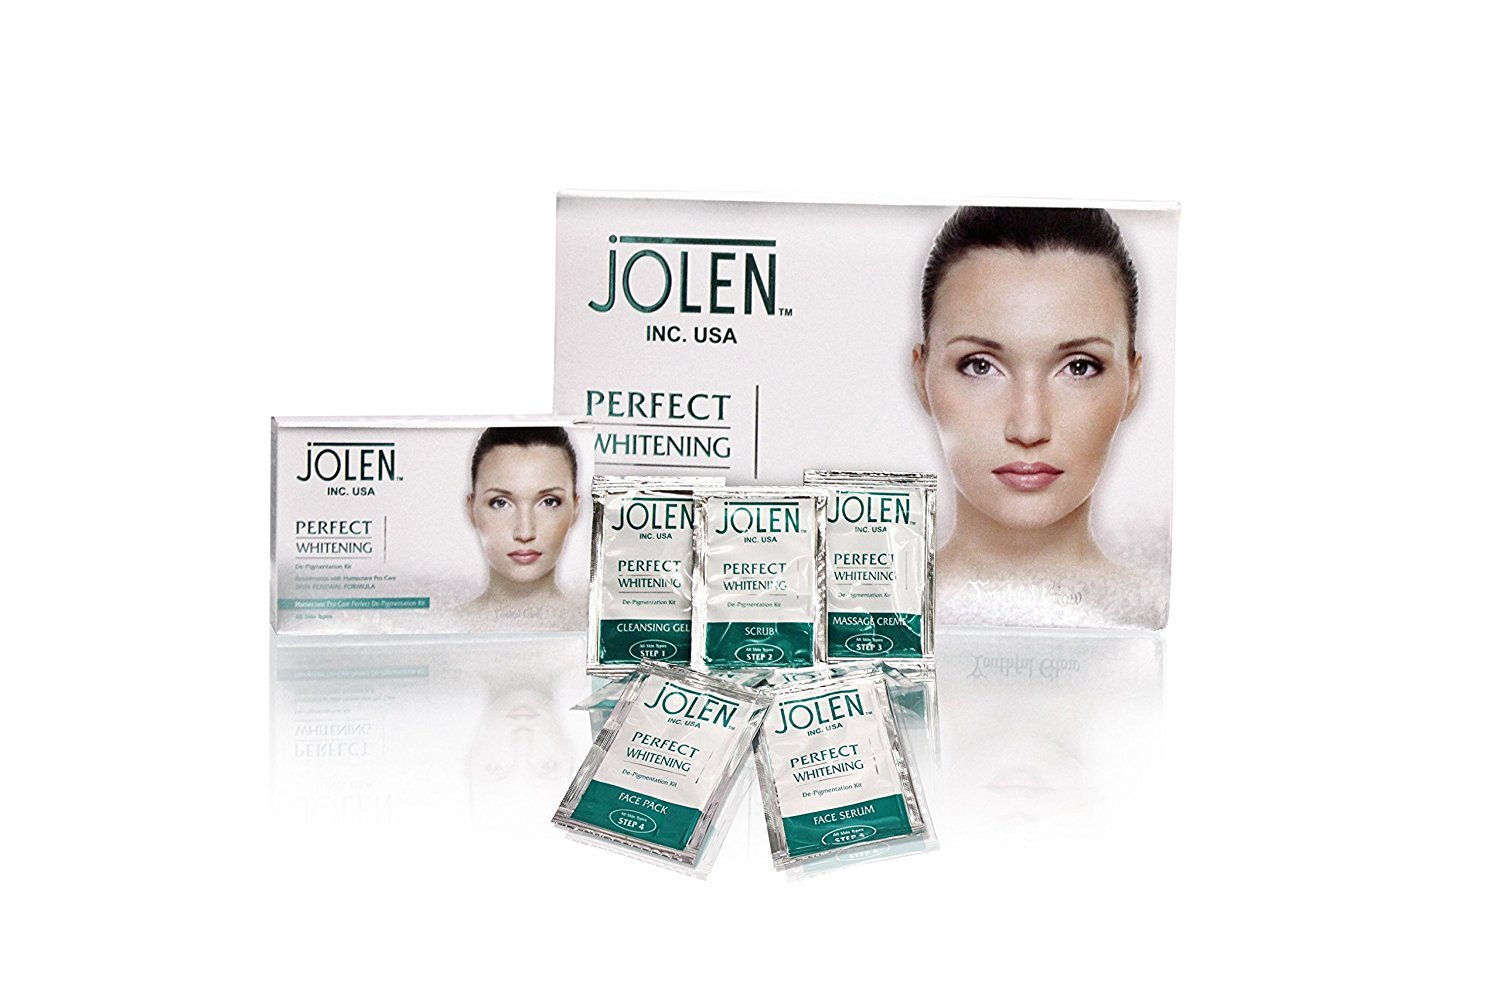 Facial kit by Jolen - Perfect whitening